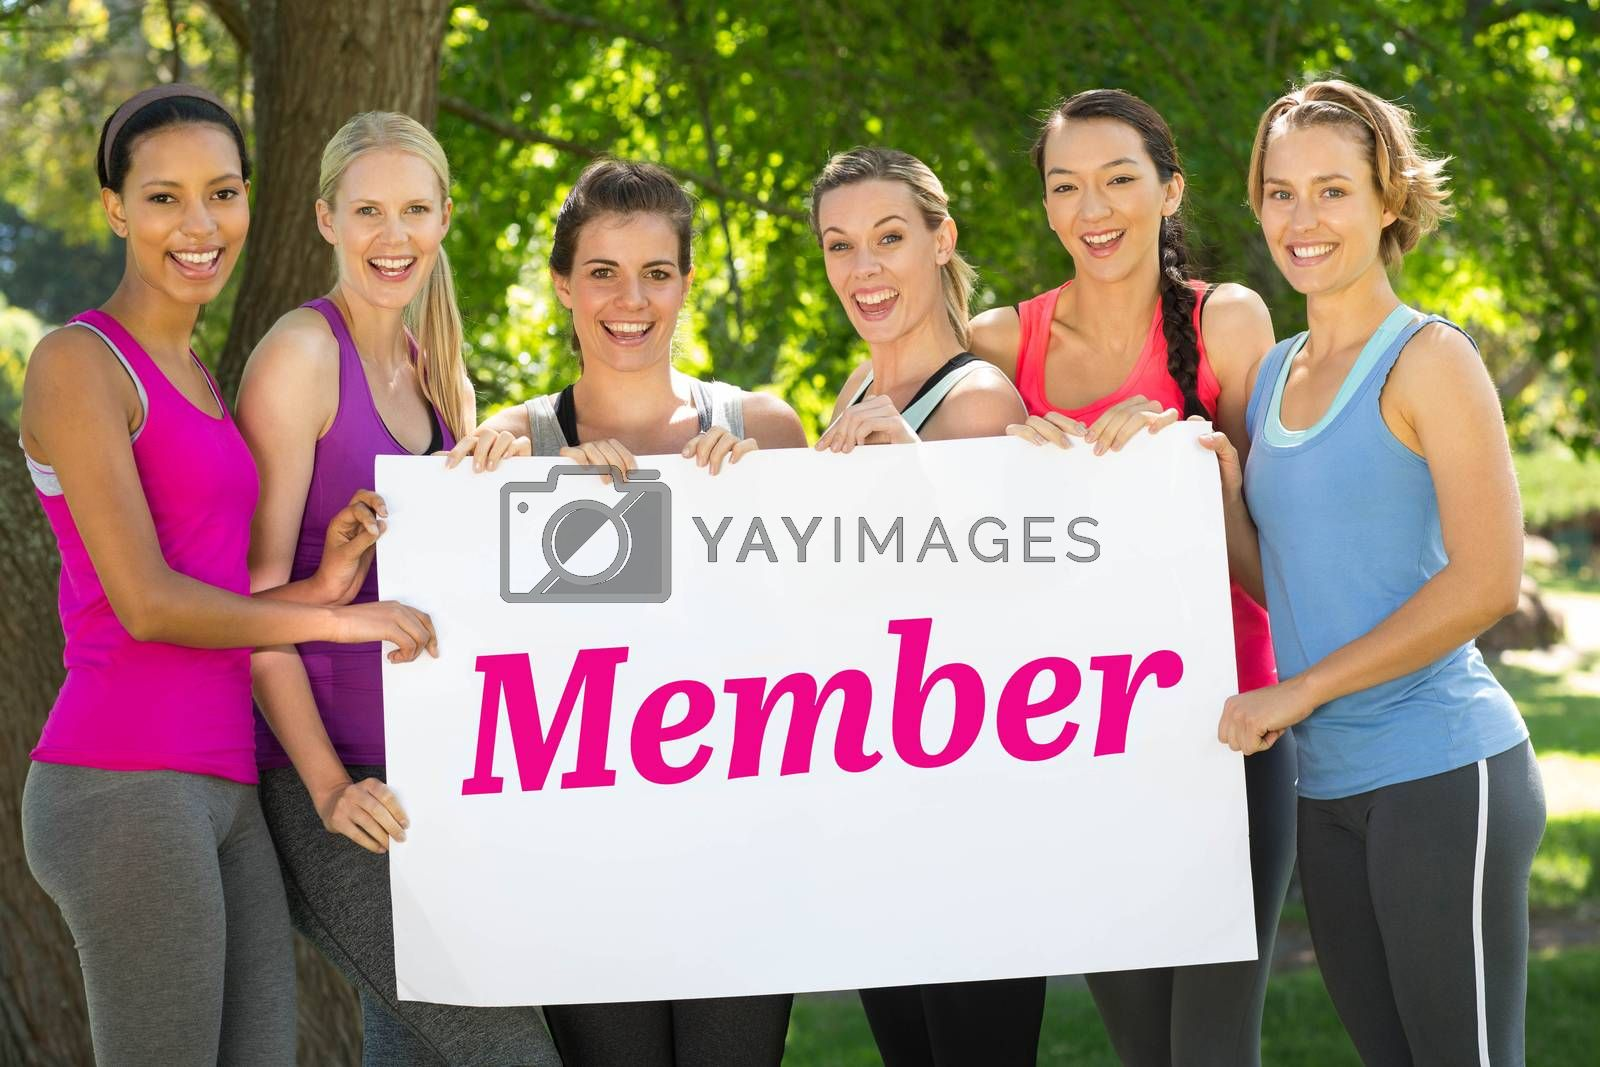 The word member and white wall against fitness group holding poster in park